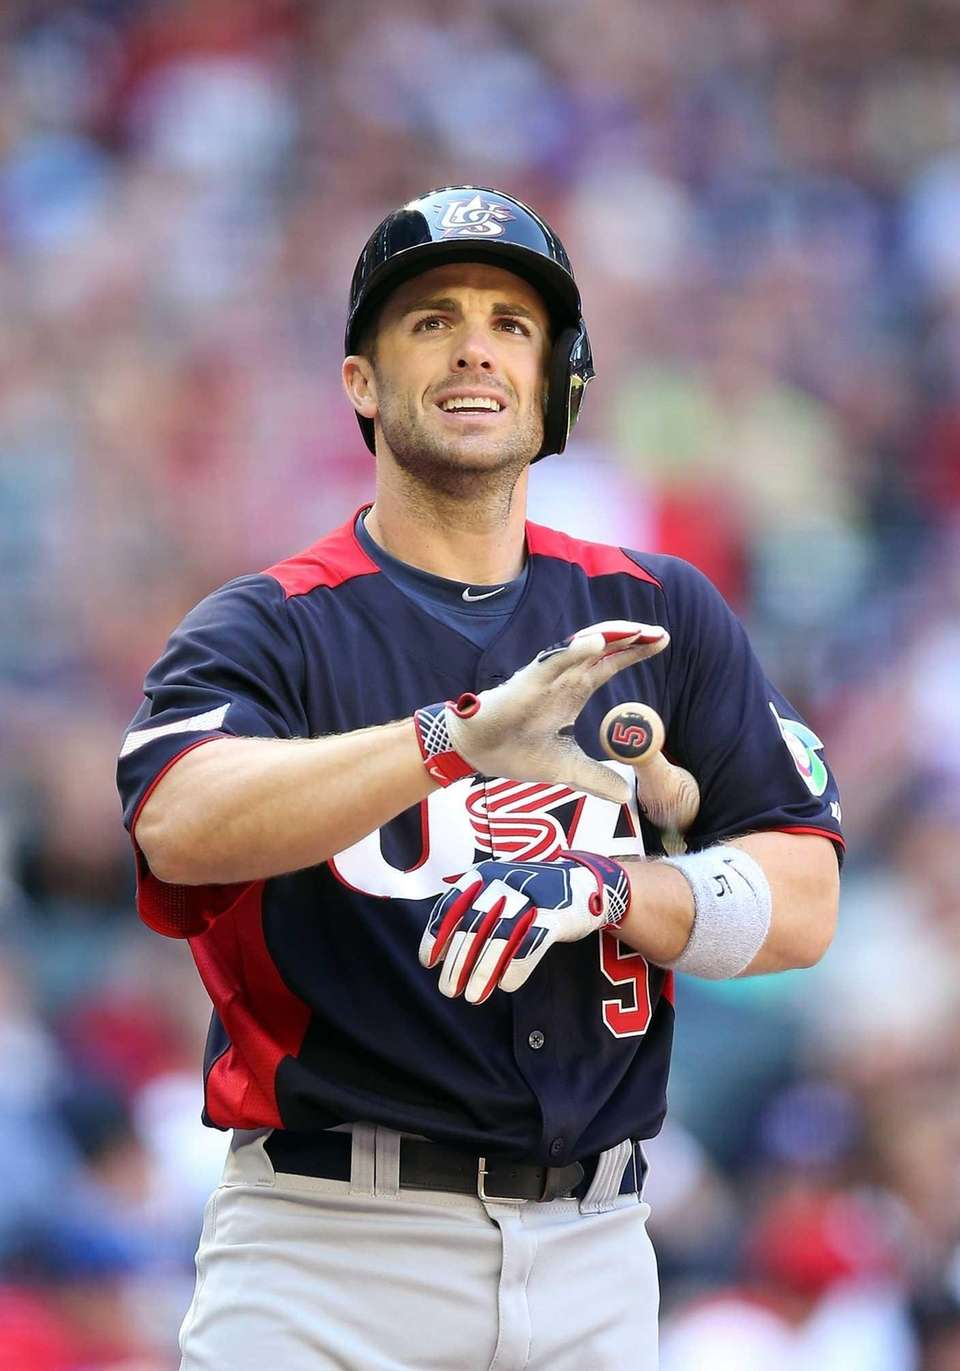 David Wright of the USA grabs his bat